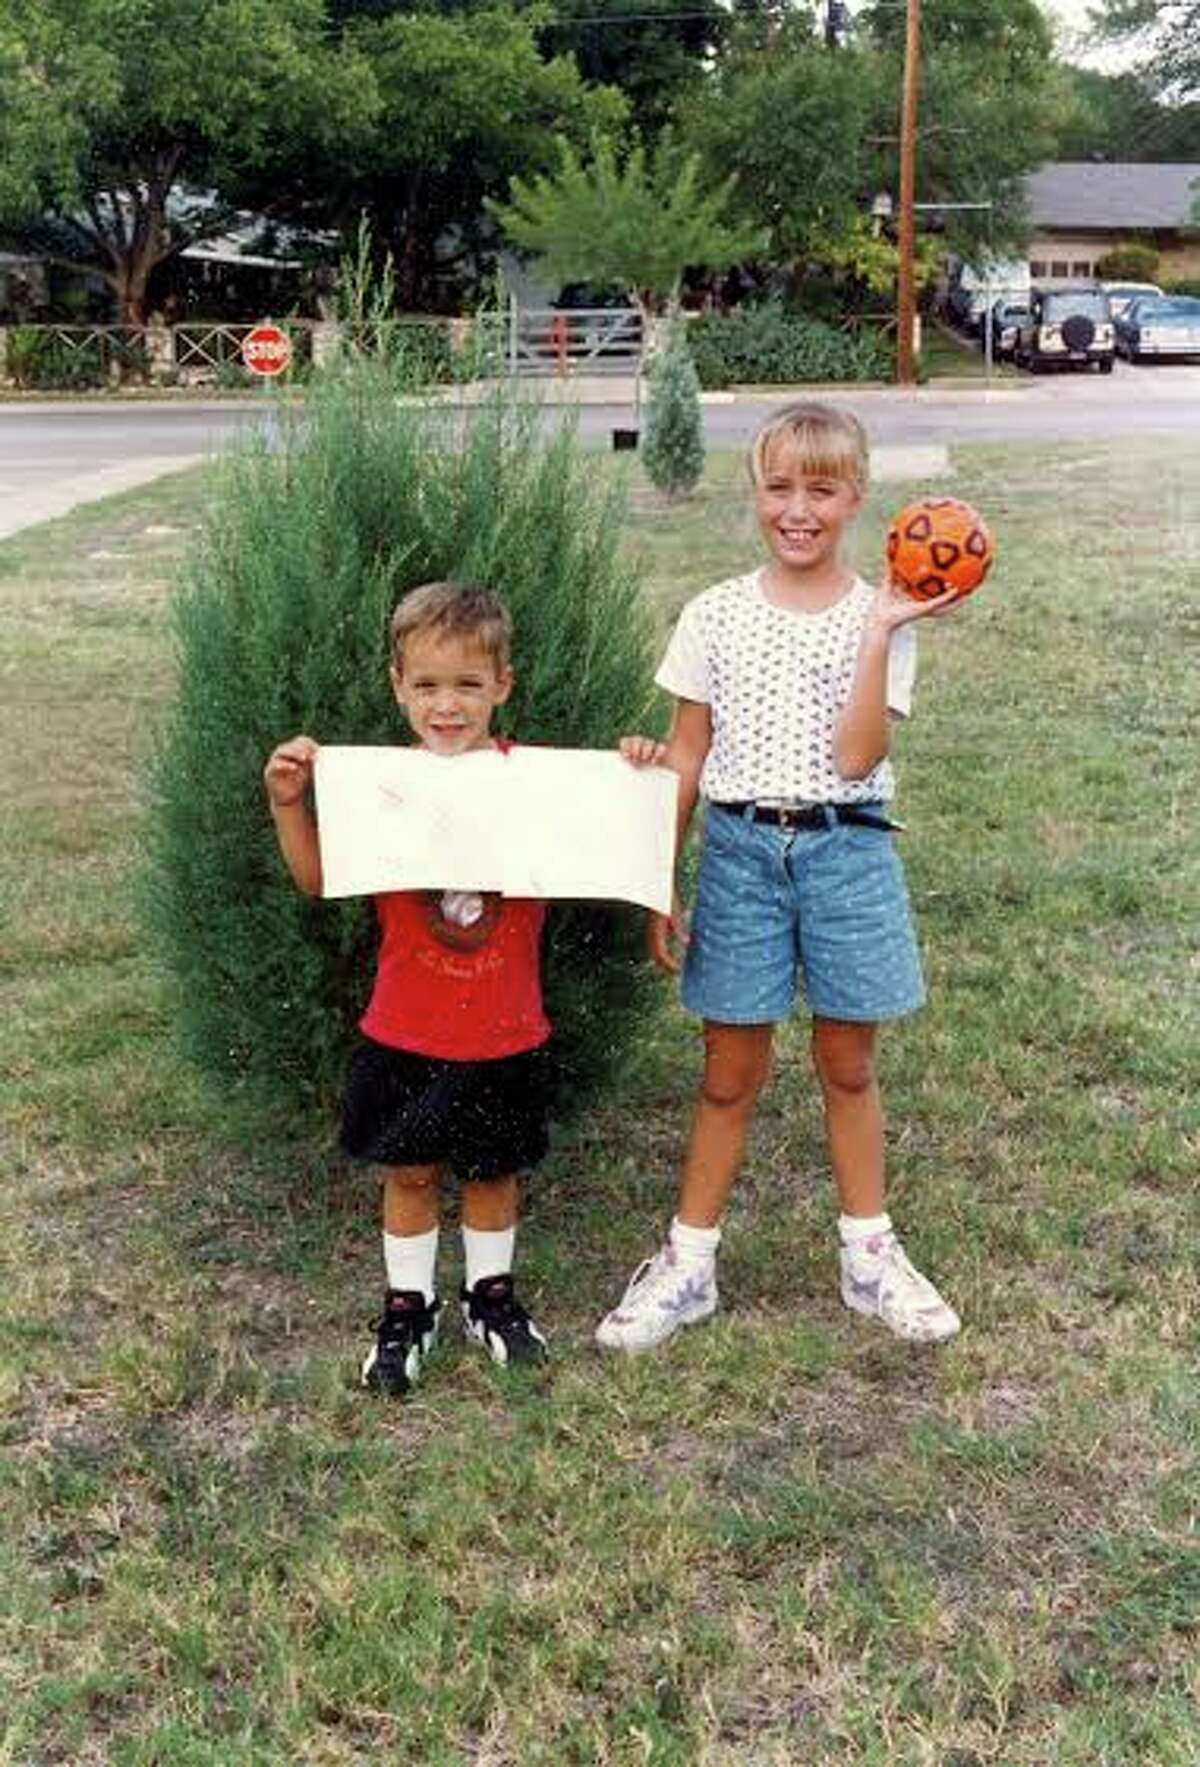 Then: Siblings Brian Bowles (age 5) and Emily Bowles (age 9) pose at Colonies North Elementary School in 1996 in front of two Arizona cypress trees planted by Emily four years earlier, when she was in kindergarten.